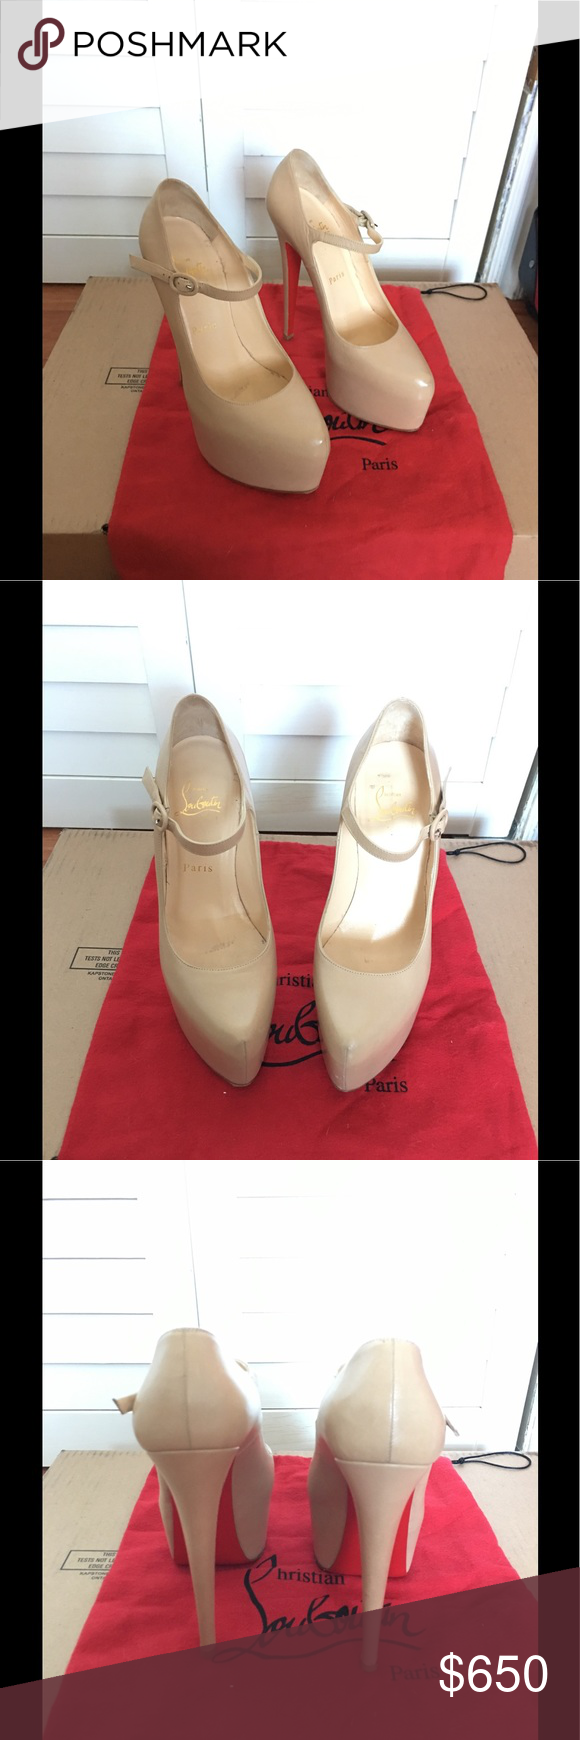 31df4705356 💯Authentic Christian Louboutin Lady Daf 37 Authentic Christian ...